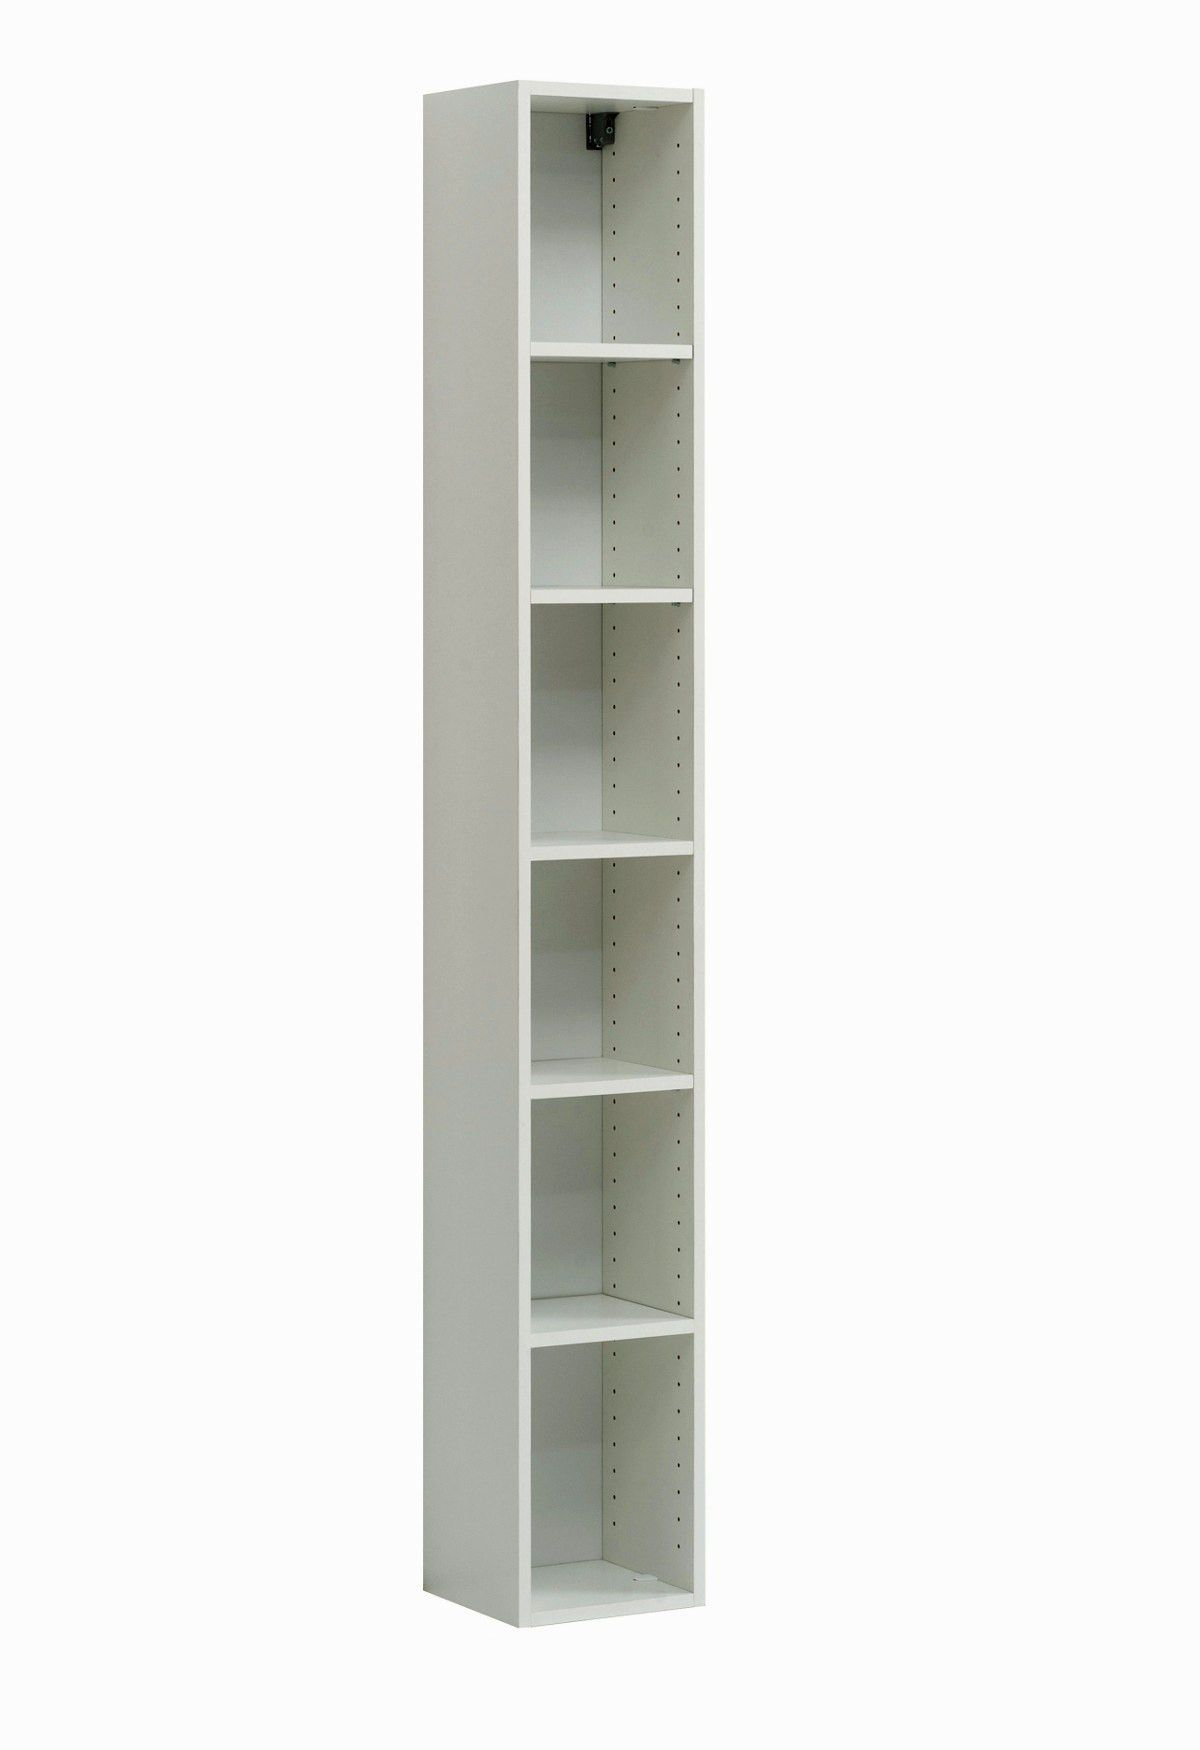 Badezimmer Regal 25 Cm Tief Stock In 2020 Locker Storage